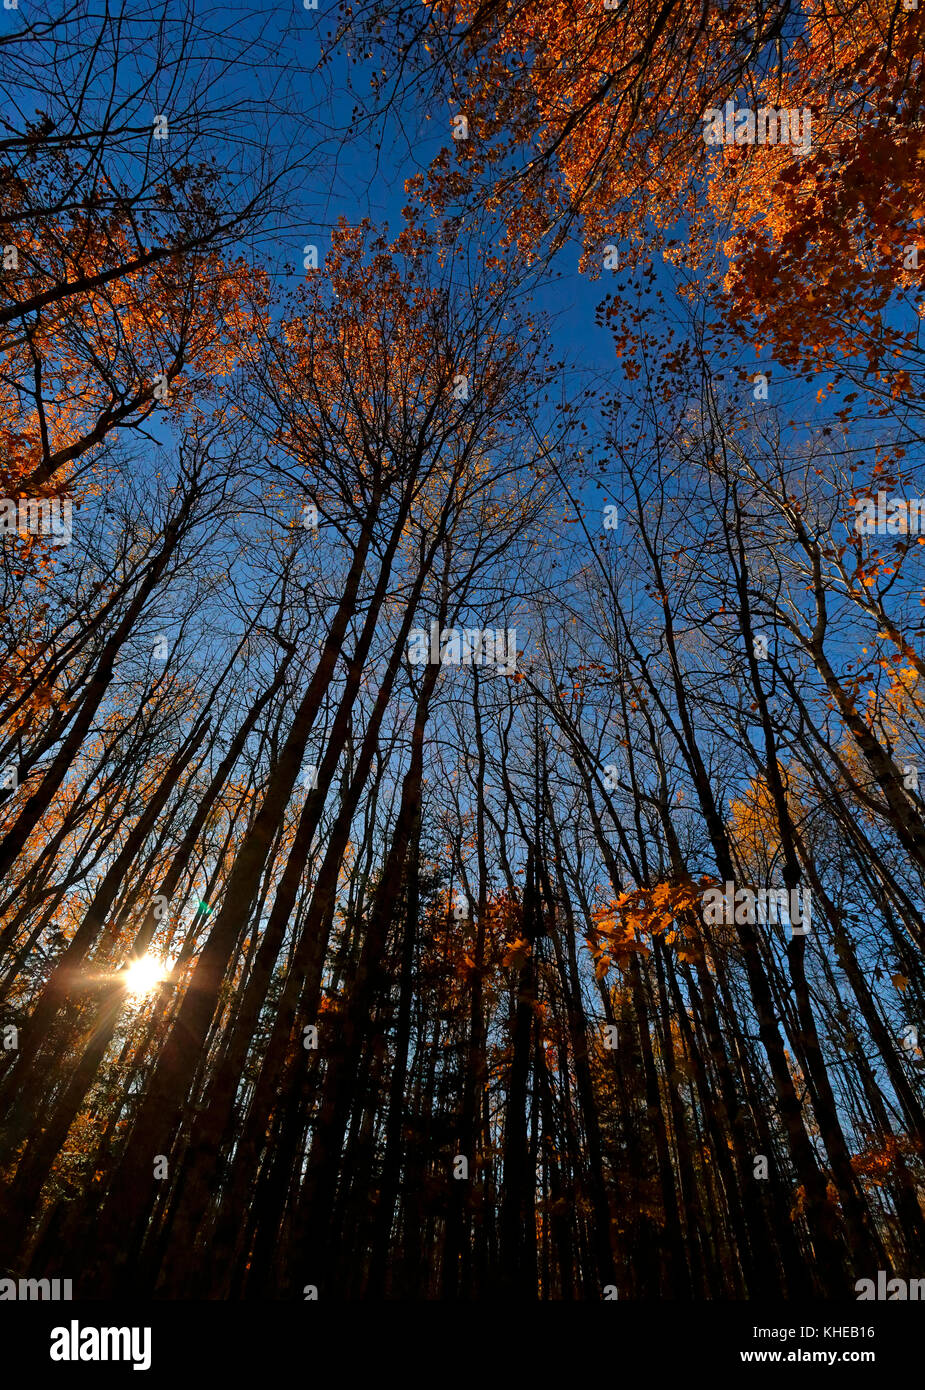 Late afternoon sun hits the tops of trees, accentuating the autumn leaves against a blue sky. - Stock Image